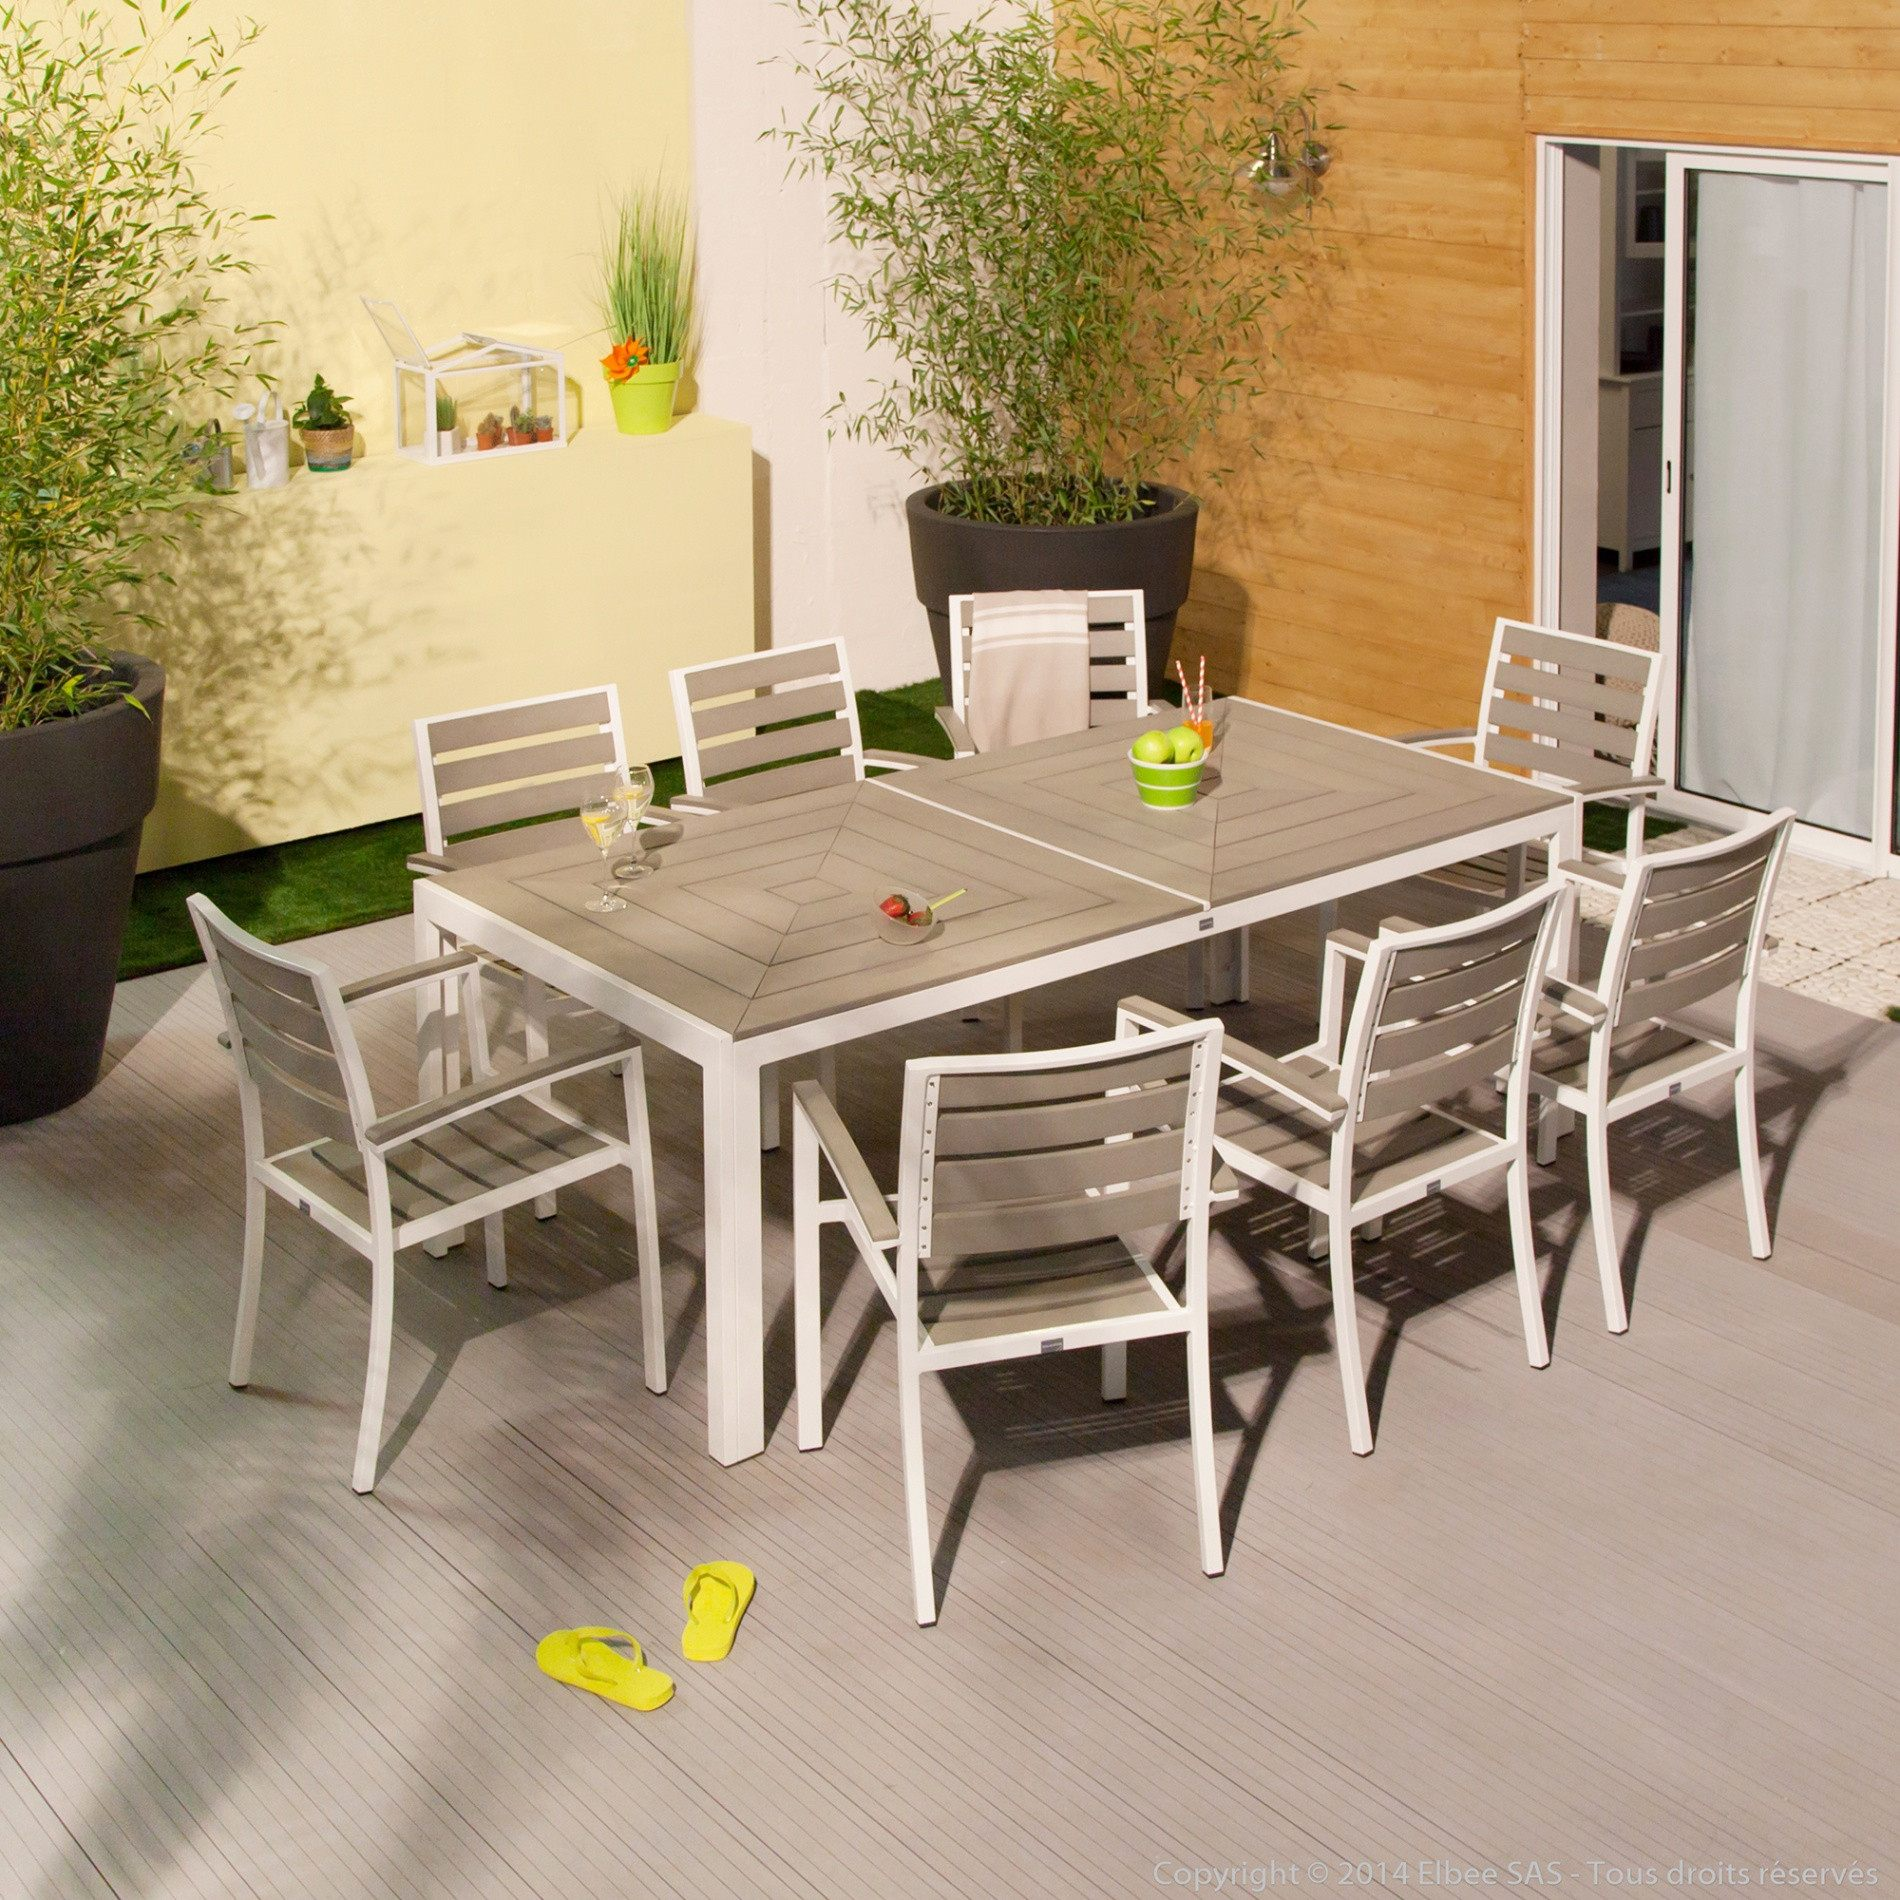 Table Pour Terrasse Best Of Table Terrasse Pas Cher Of 29 Charmant Table Pour Terrasse